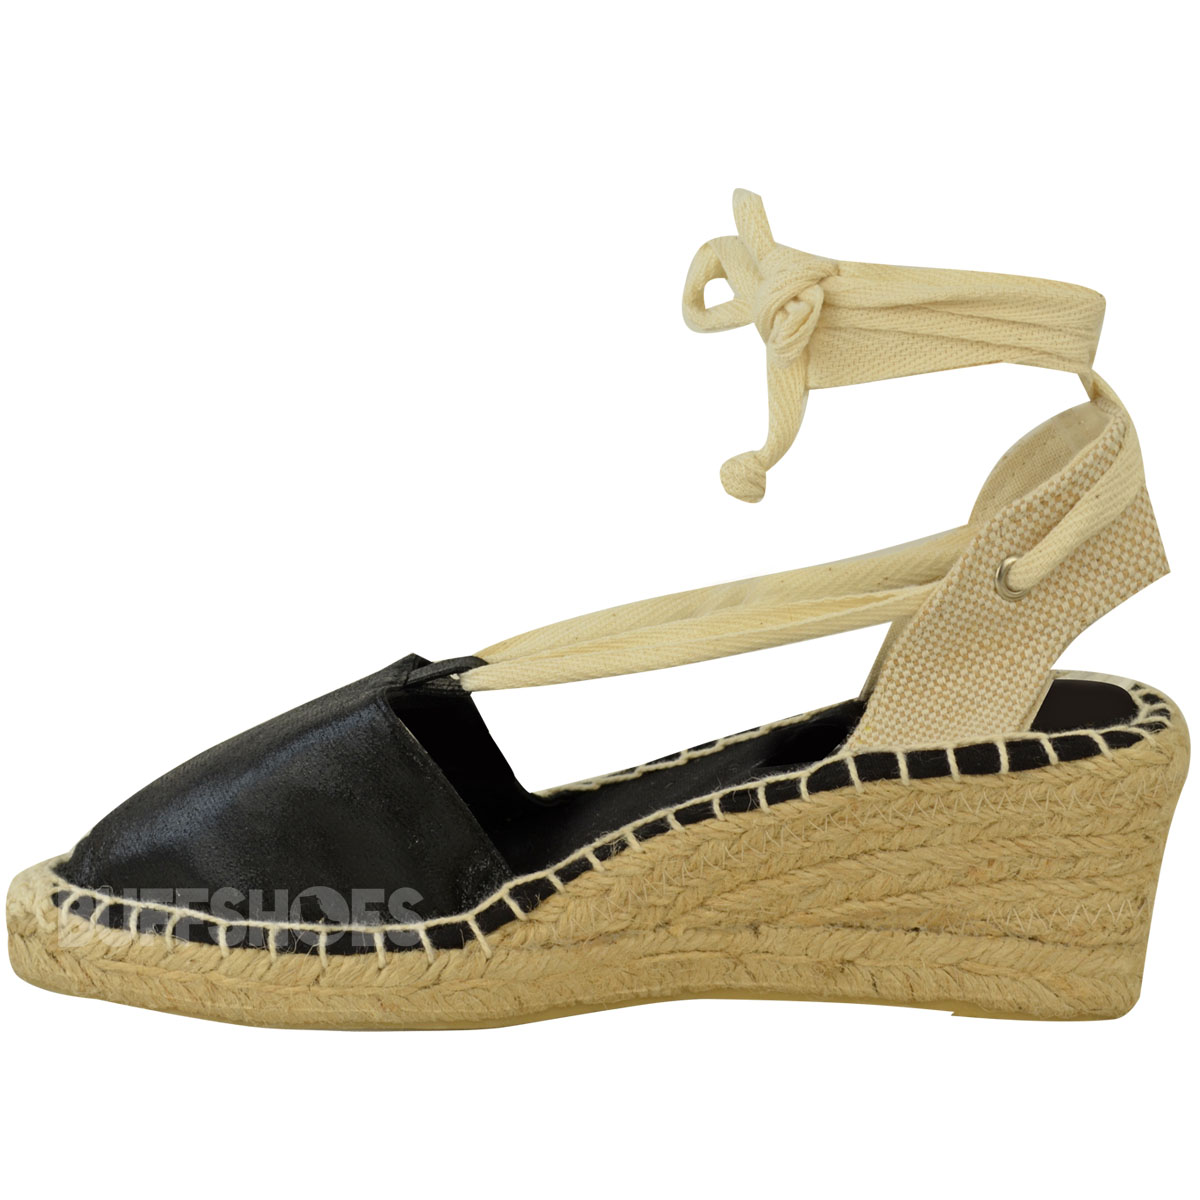 Womens Ladies Summer Wedges Low Heel Espadrilles Lace Up ...